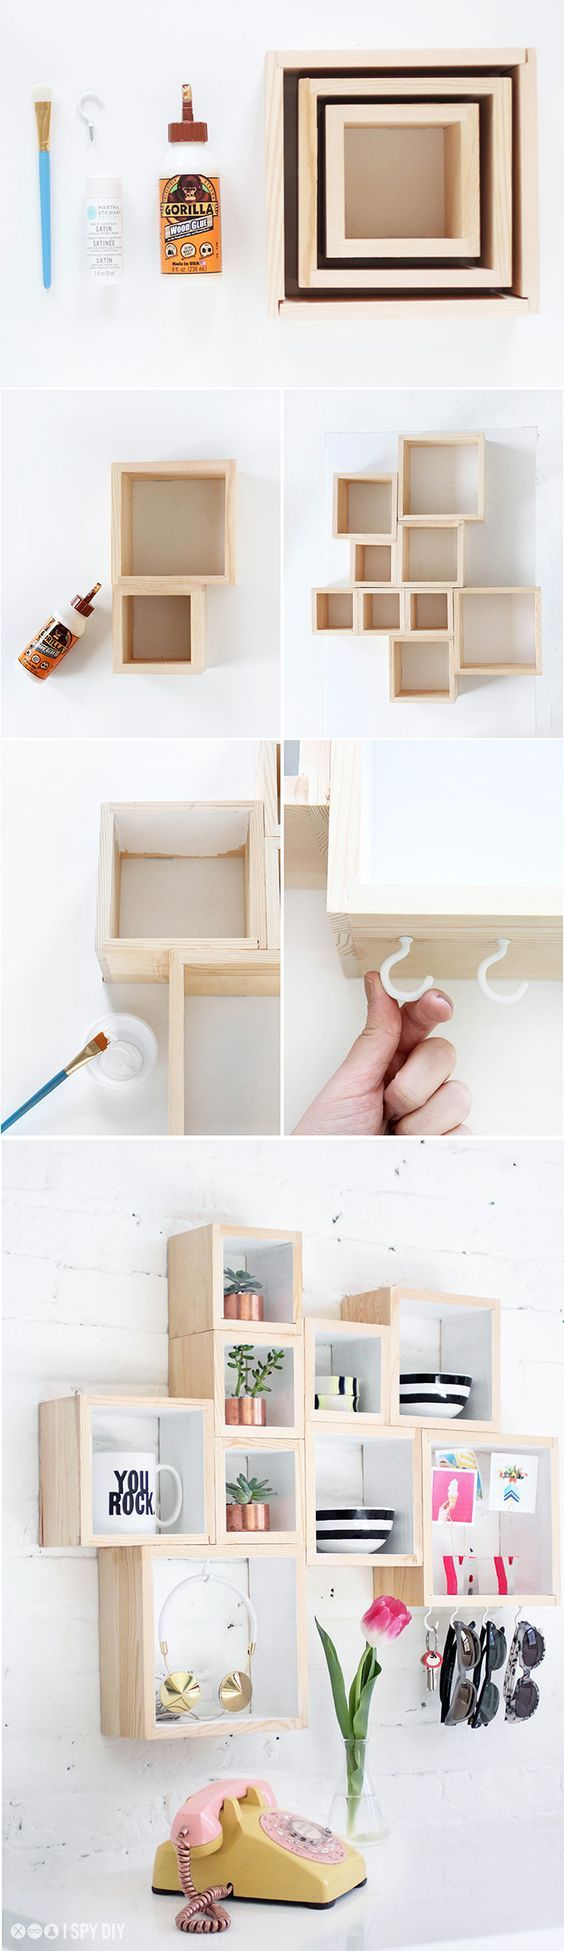 Want to try your skills in some easy woodworking projects? Whether you're a beginner or an expert, you'll find something to work on from.